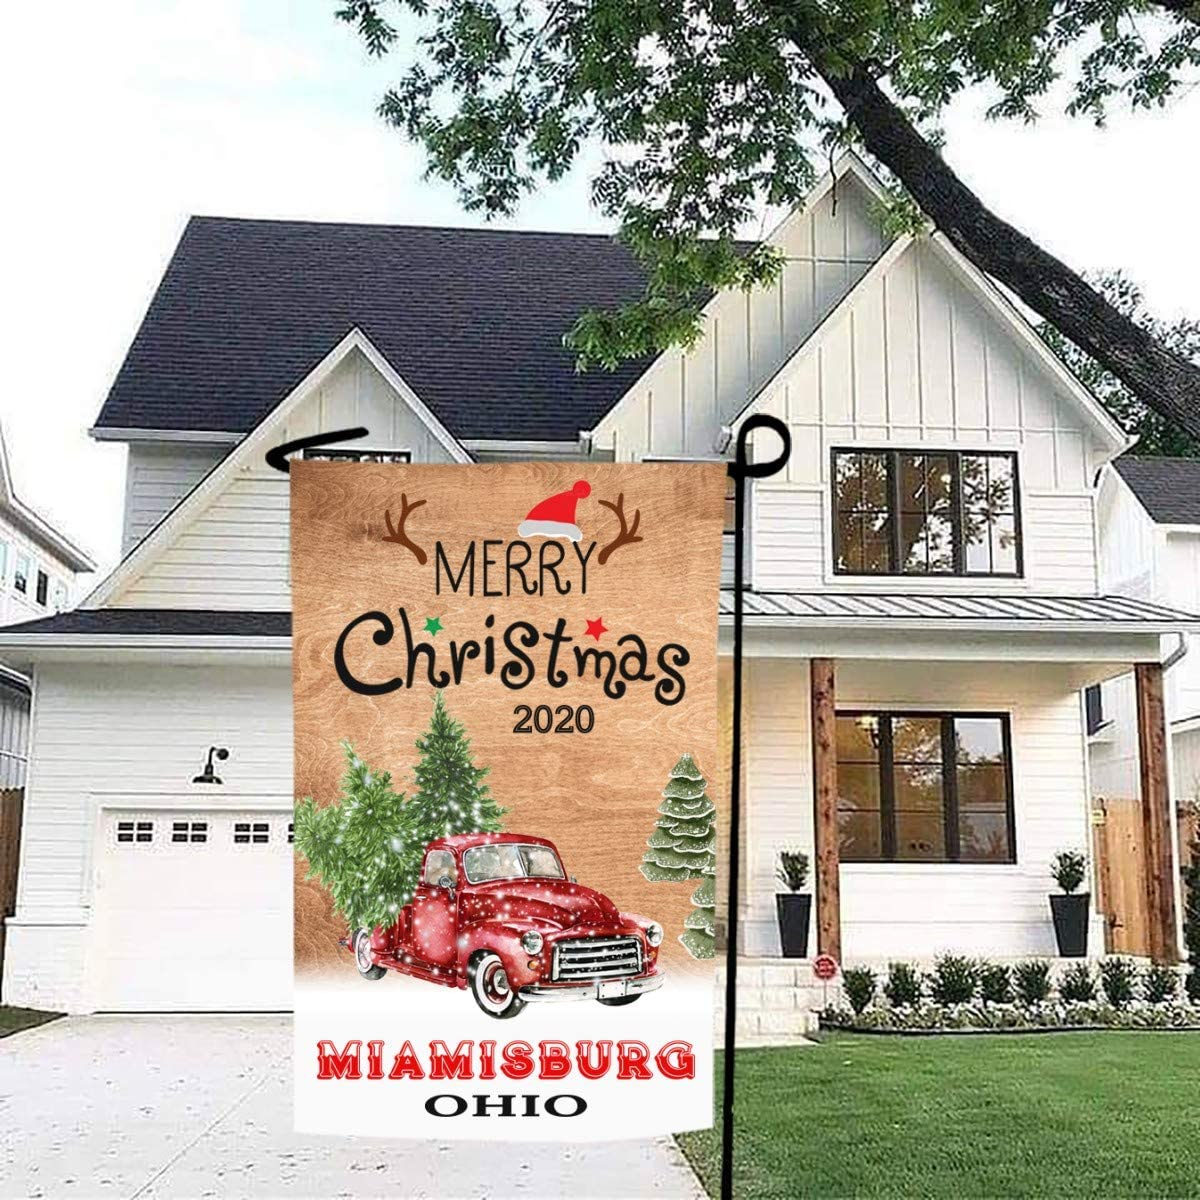 Merry Christmas Garden Flag Red Truck 2020 Miamisburg Ohio State - Rustic Winter Garden Yard Decorations, Outdoor Flag 12x18 Inch Double-Sided for Home, Garden (Not Included Stand)